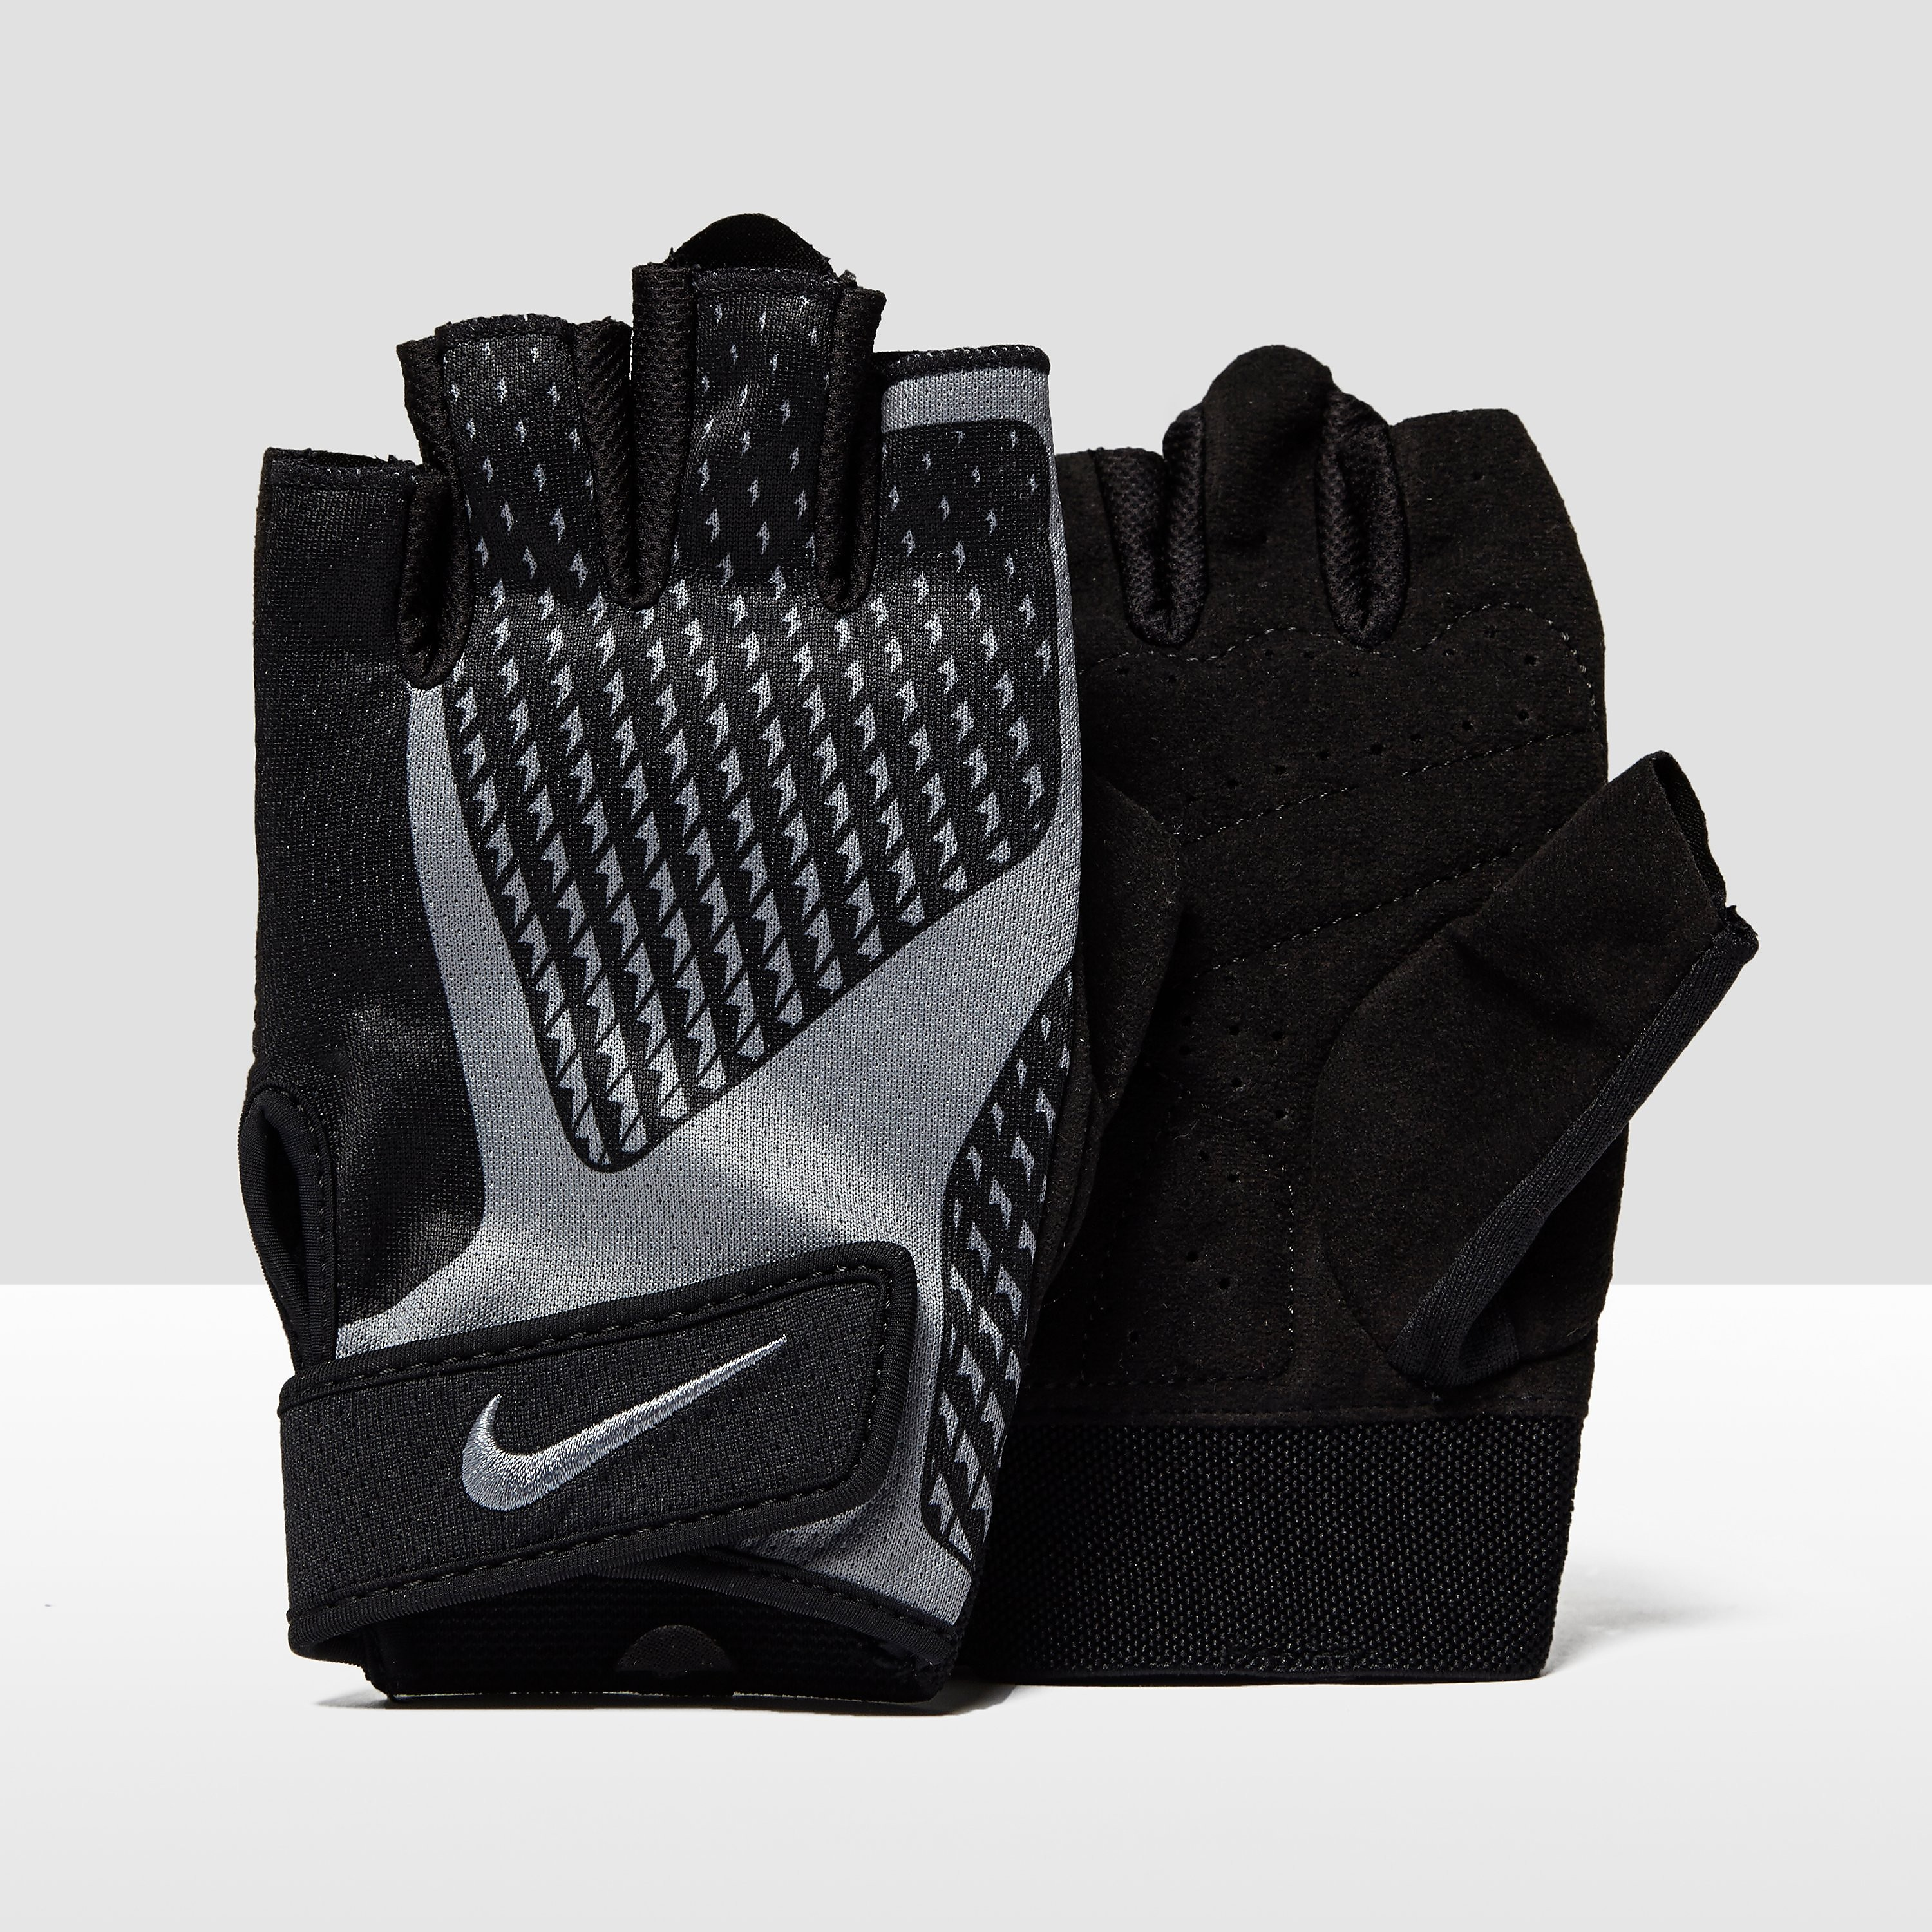 Nike Core Lock 2.0 Men's Training Gloves